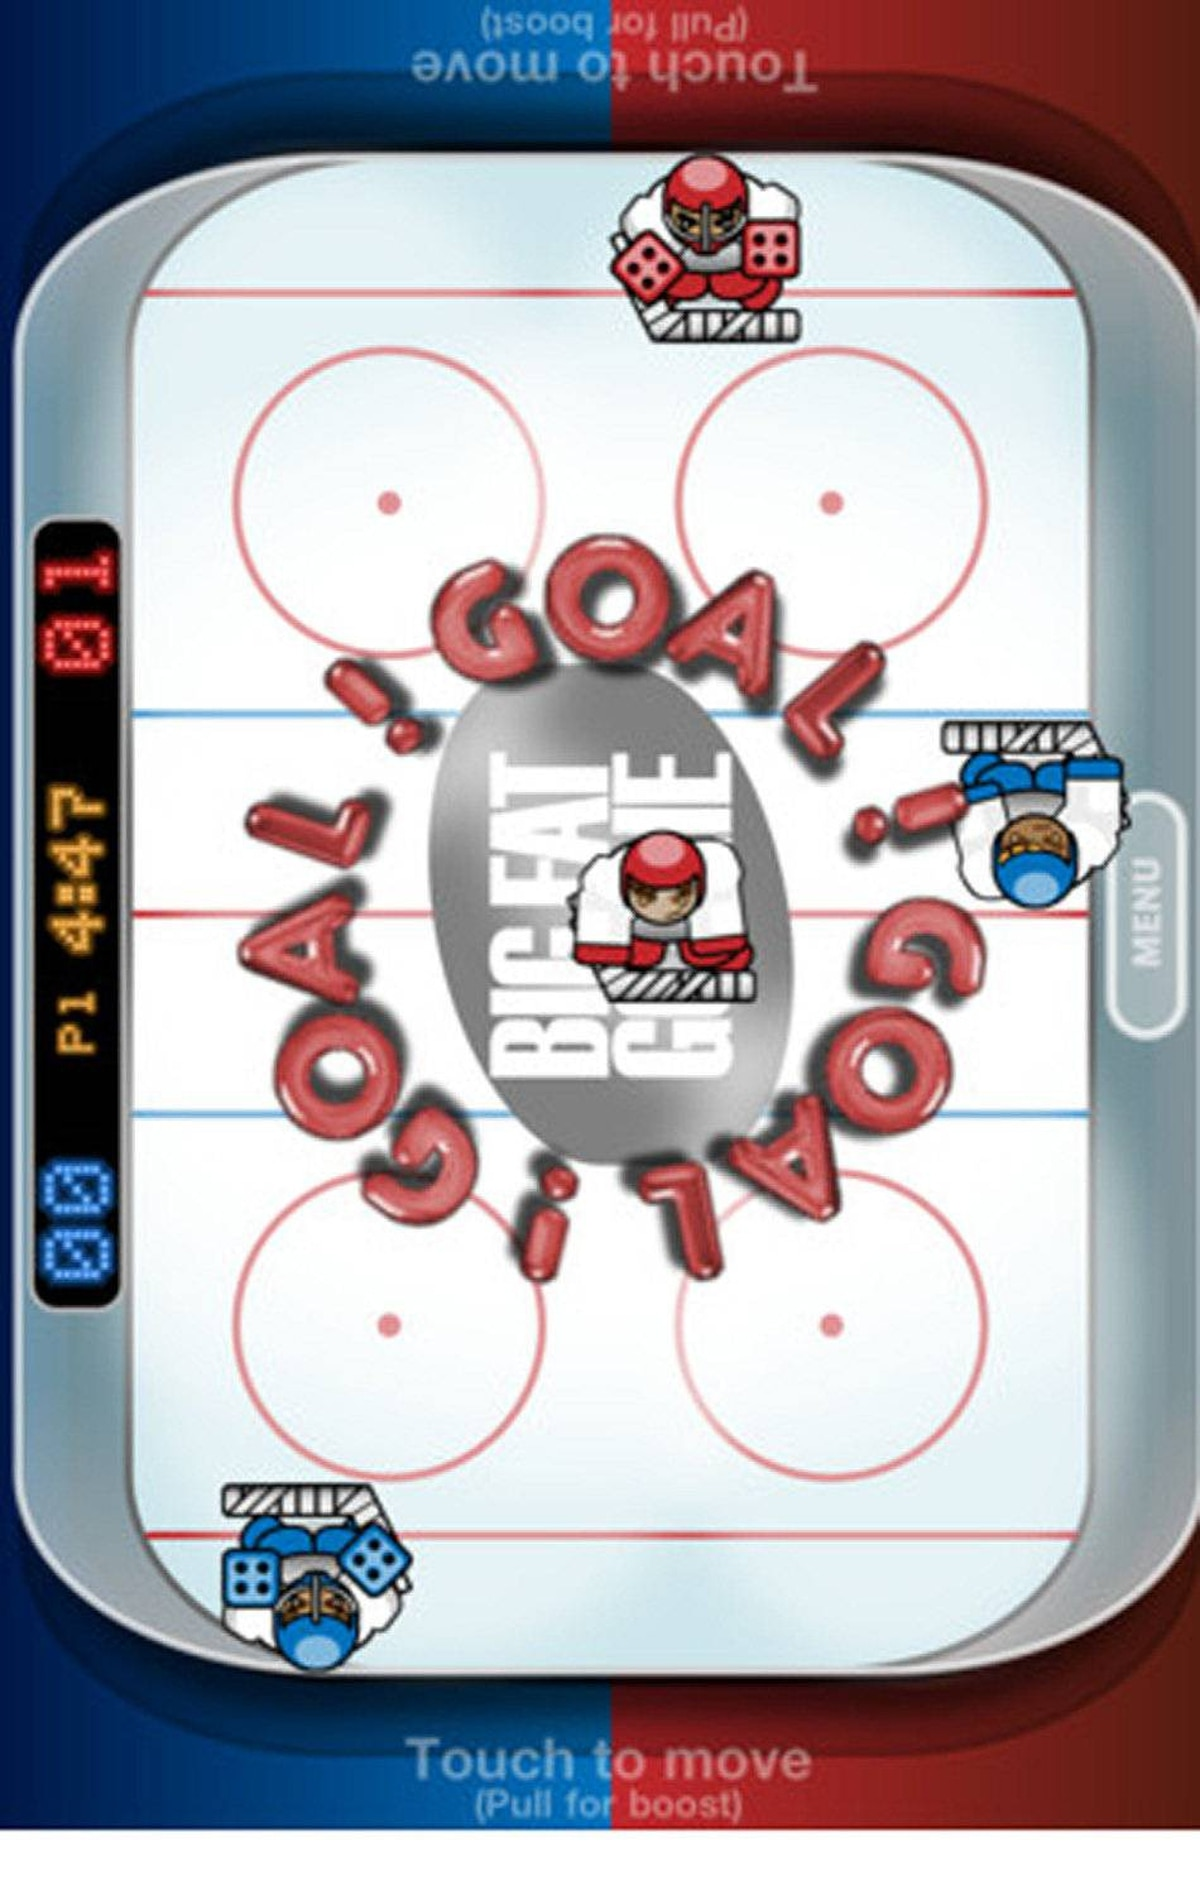 Big Fat Goalie (iPad/iPhone/iPod touch) This is a great, kid-friendly version of table-top hockey. Each player controls one side of the ice. There's no net, just a goal line, and the puck bounces off everything. Move your players to block the puck and send it back to the other side. Don't tell the kids but Big Fat Goalie is basically Pong with organ music, great sound effects, and big, chunky graphics. It's big fun for a buck. ($0.99, swipeware.com)